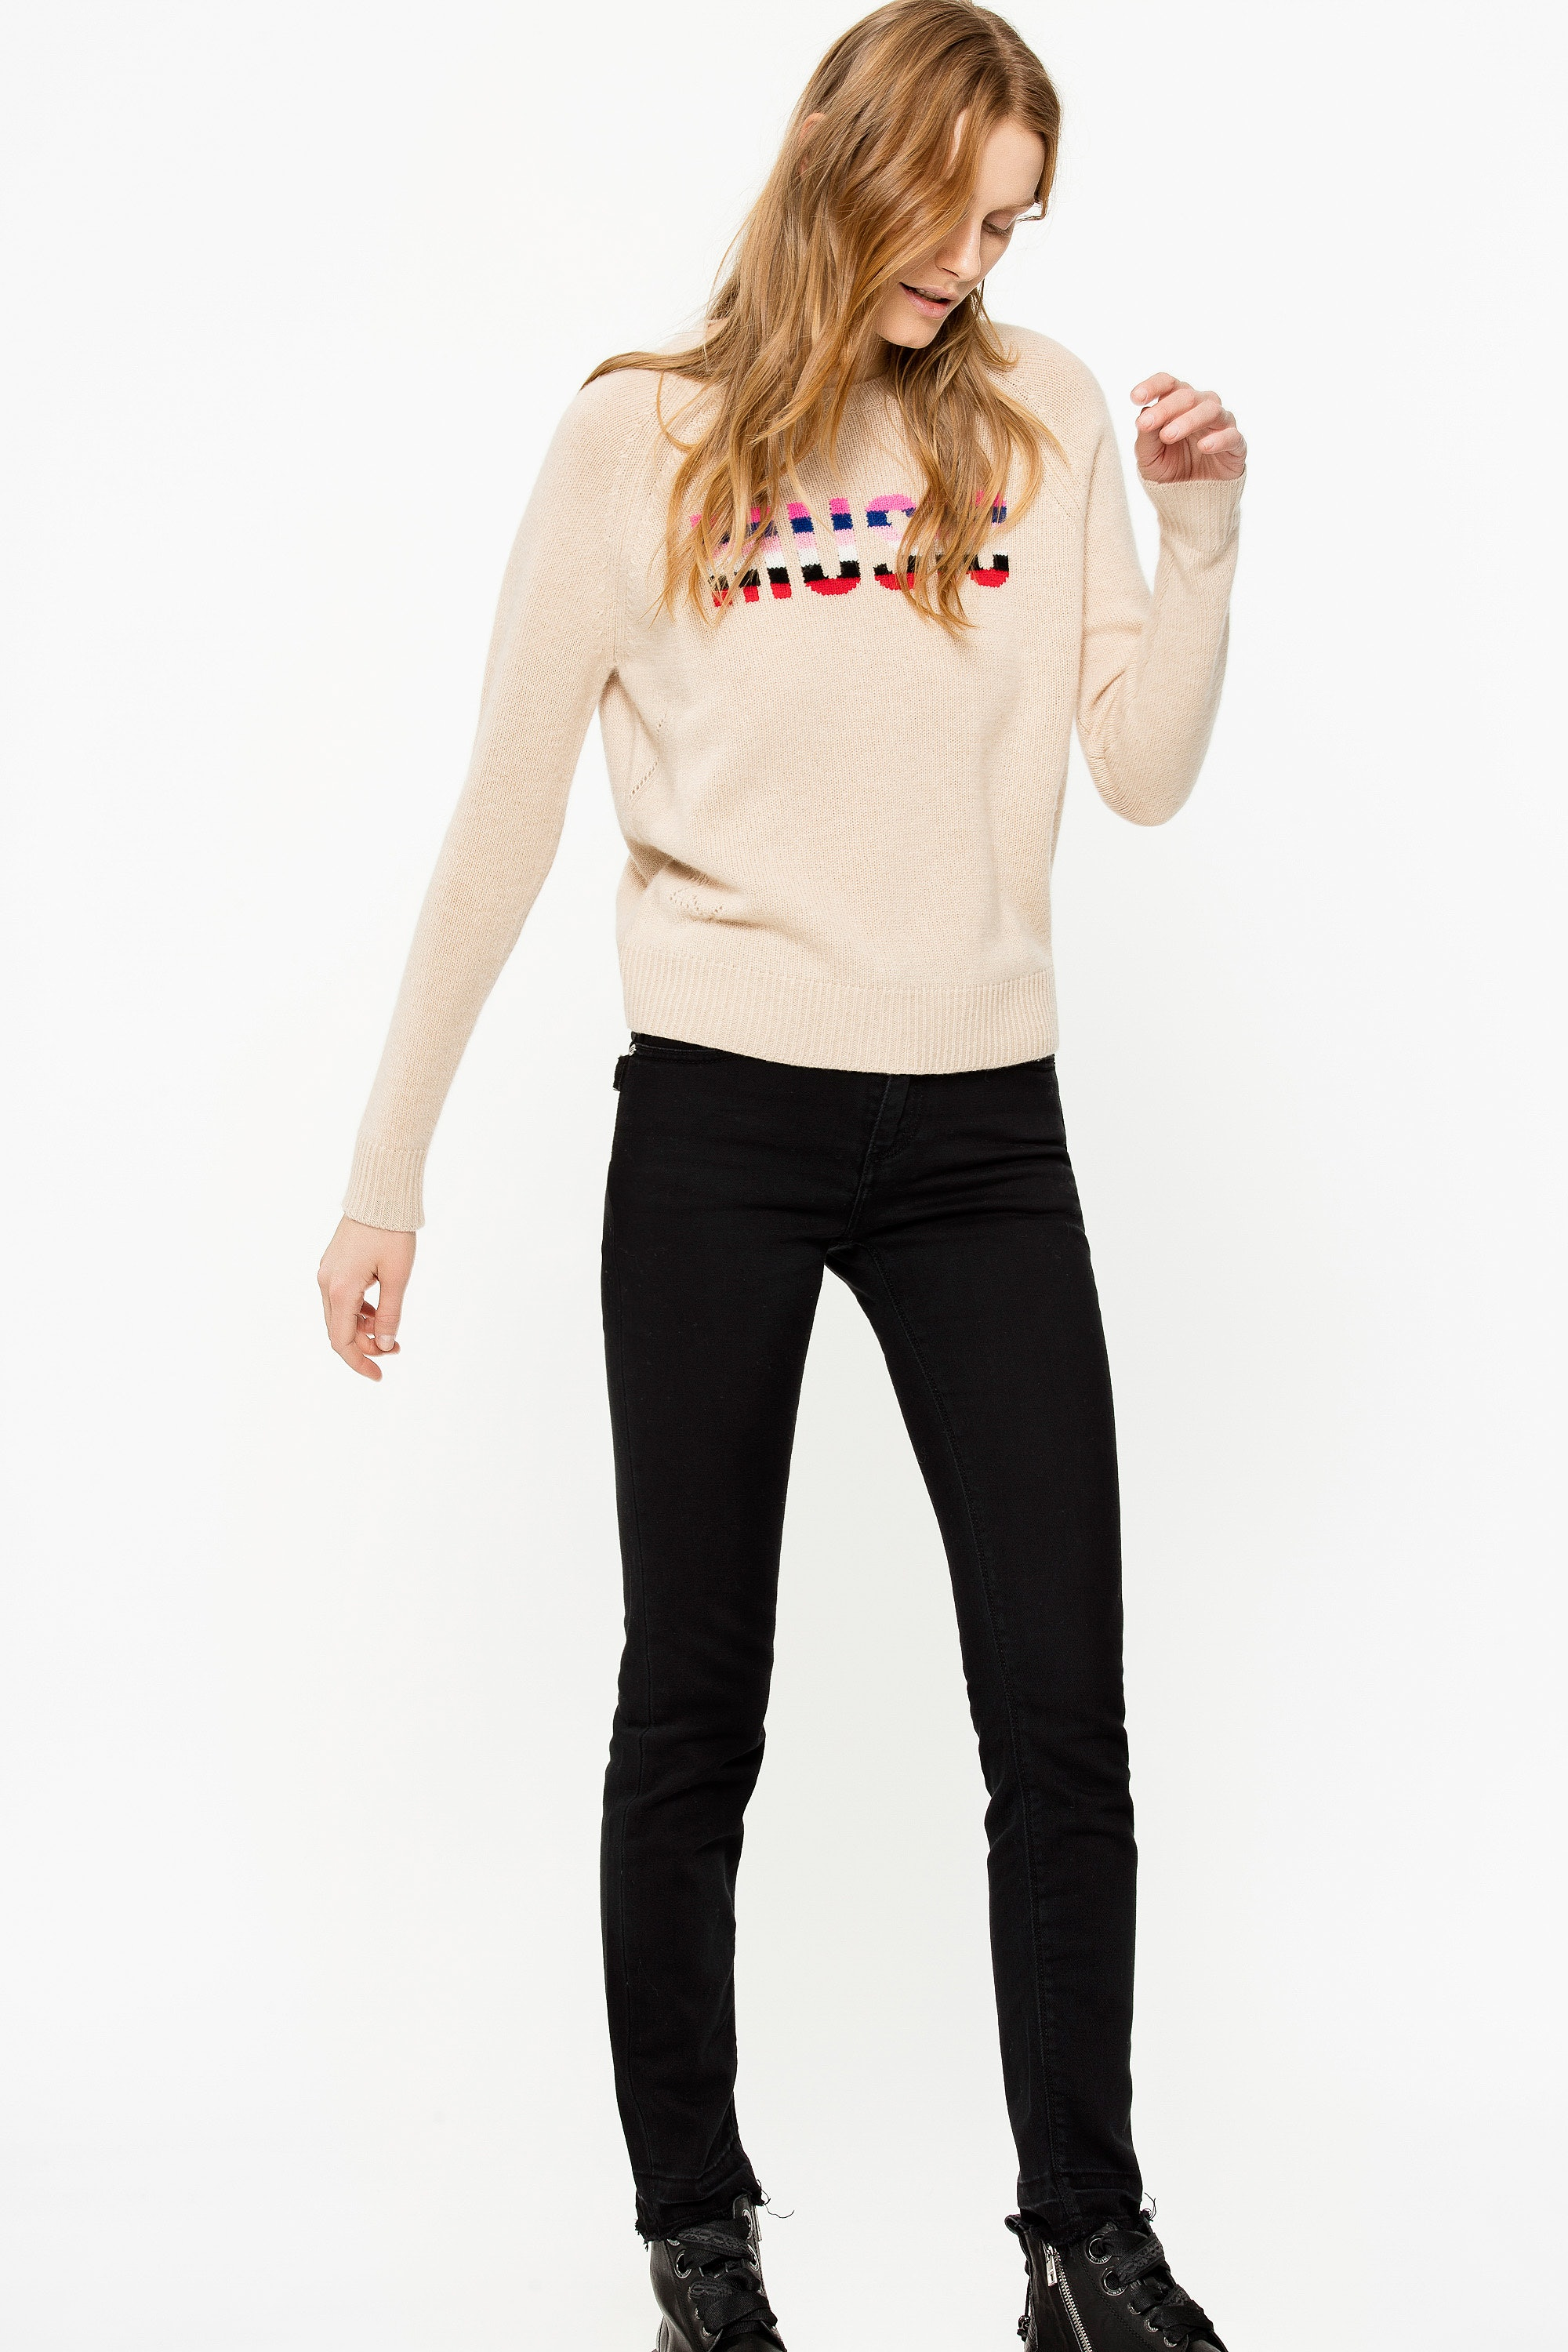 Baly Bis Cachemire Sweater